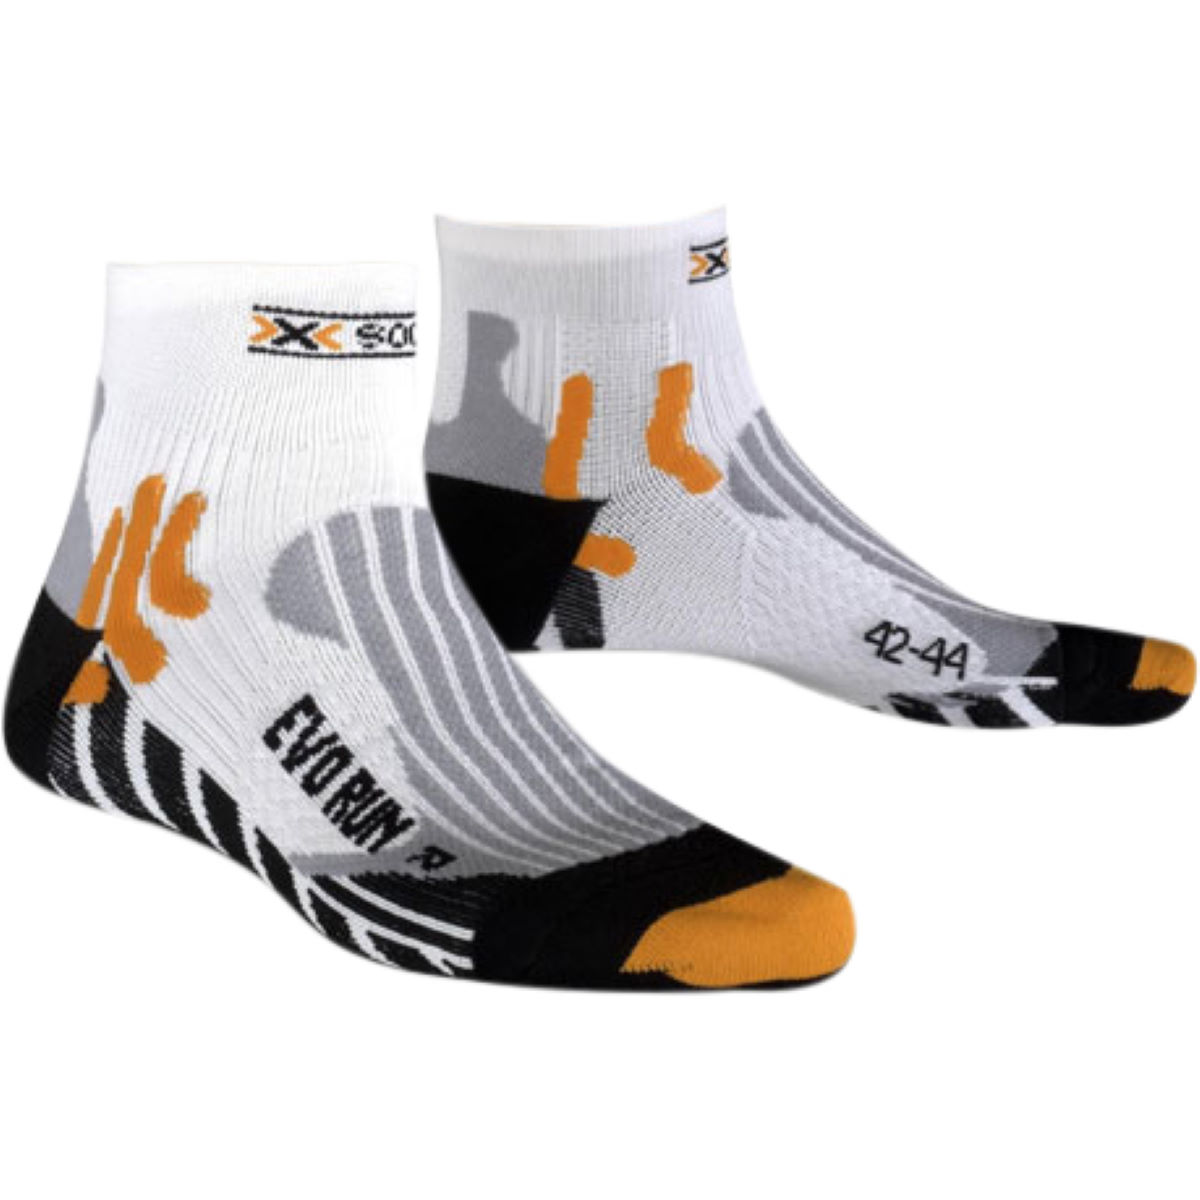 X socks evo run socks running socks white black x020300 x50